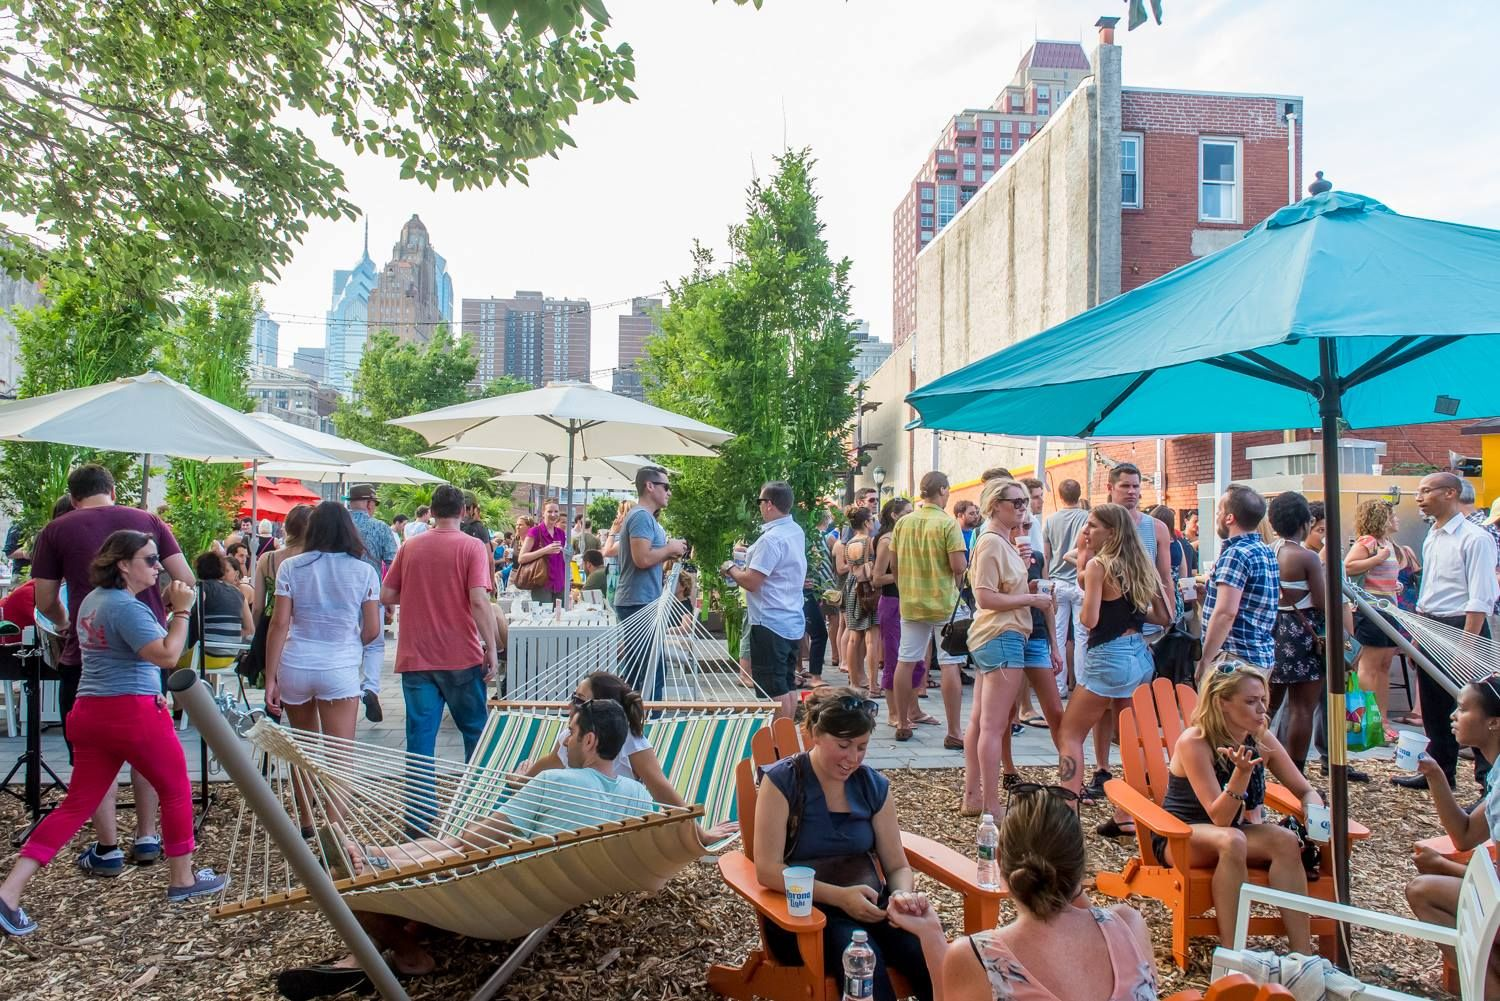 Pin on Urban Gardens & Temporary Park Projects